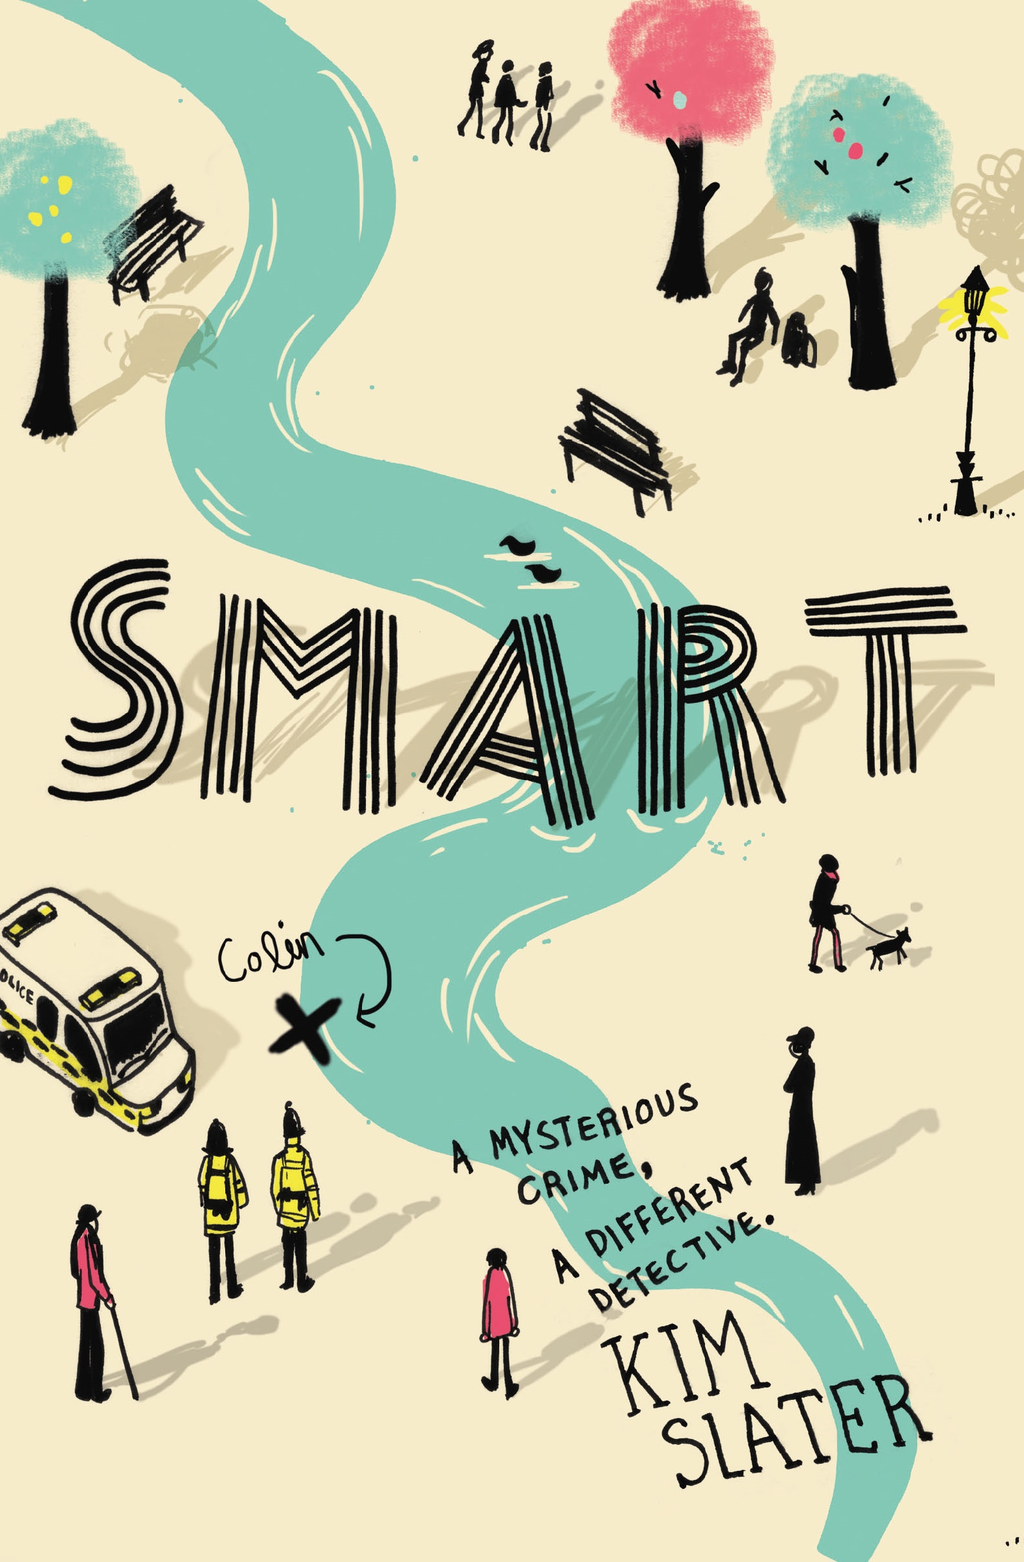 Smart A mysterious crime,  a different detective.